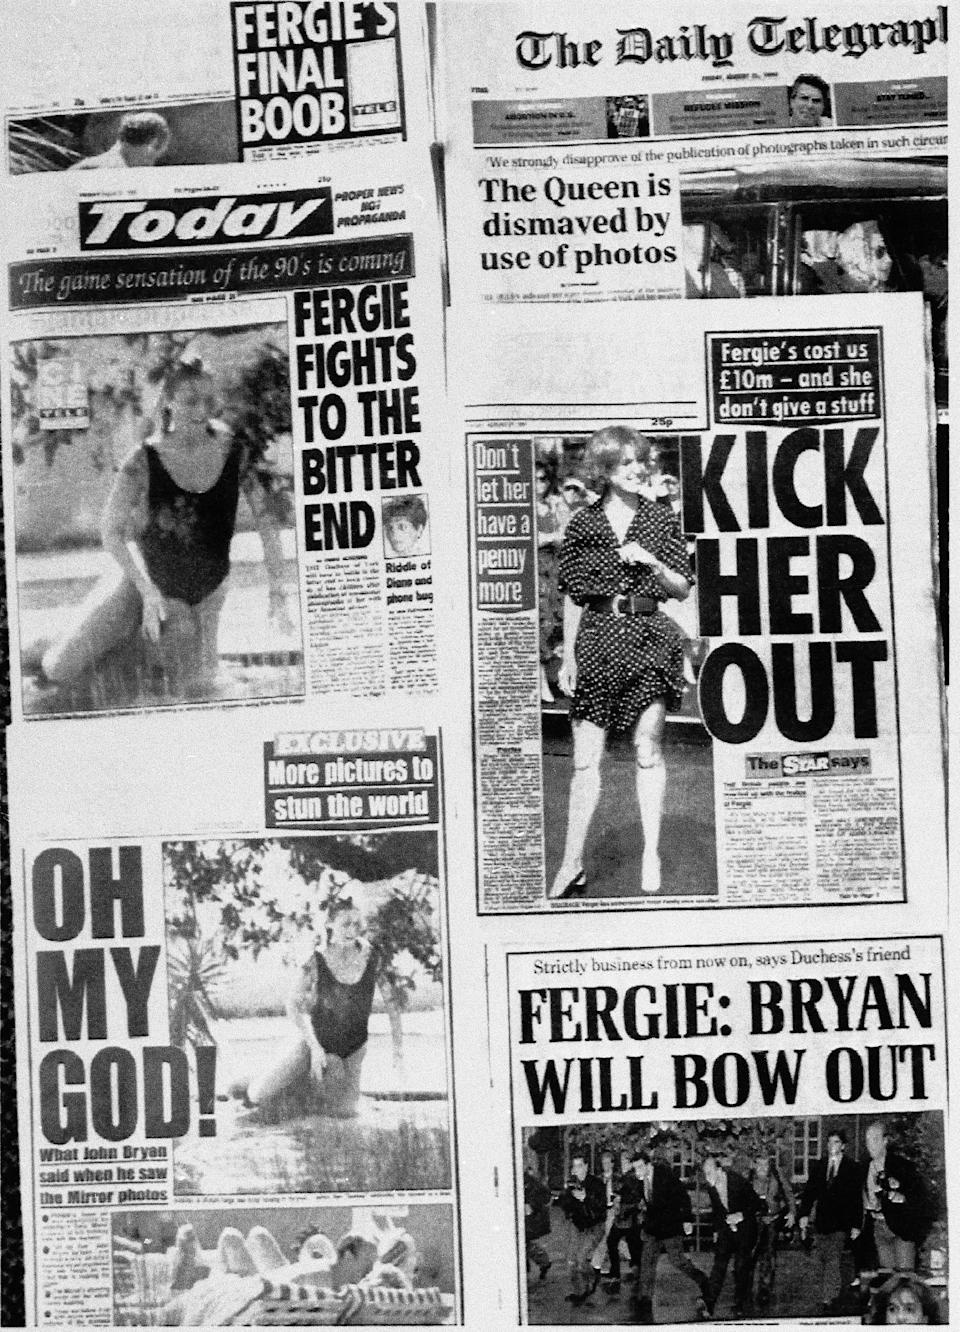 London daily papers on August 20, 1992 - Credit: ASSOCIATED PRESS.